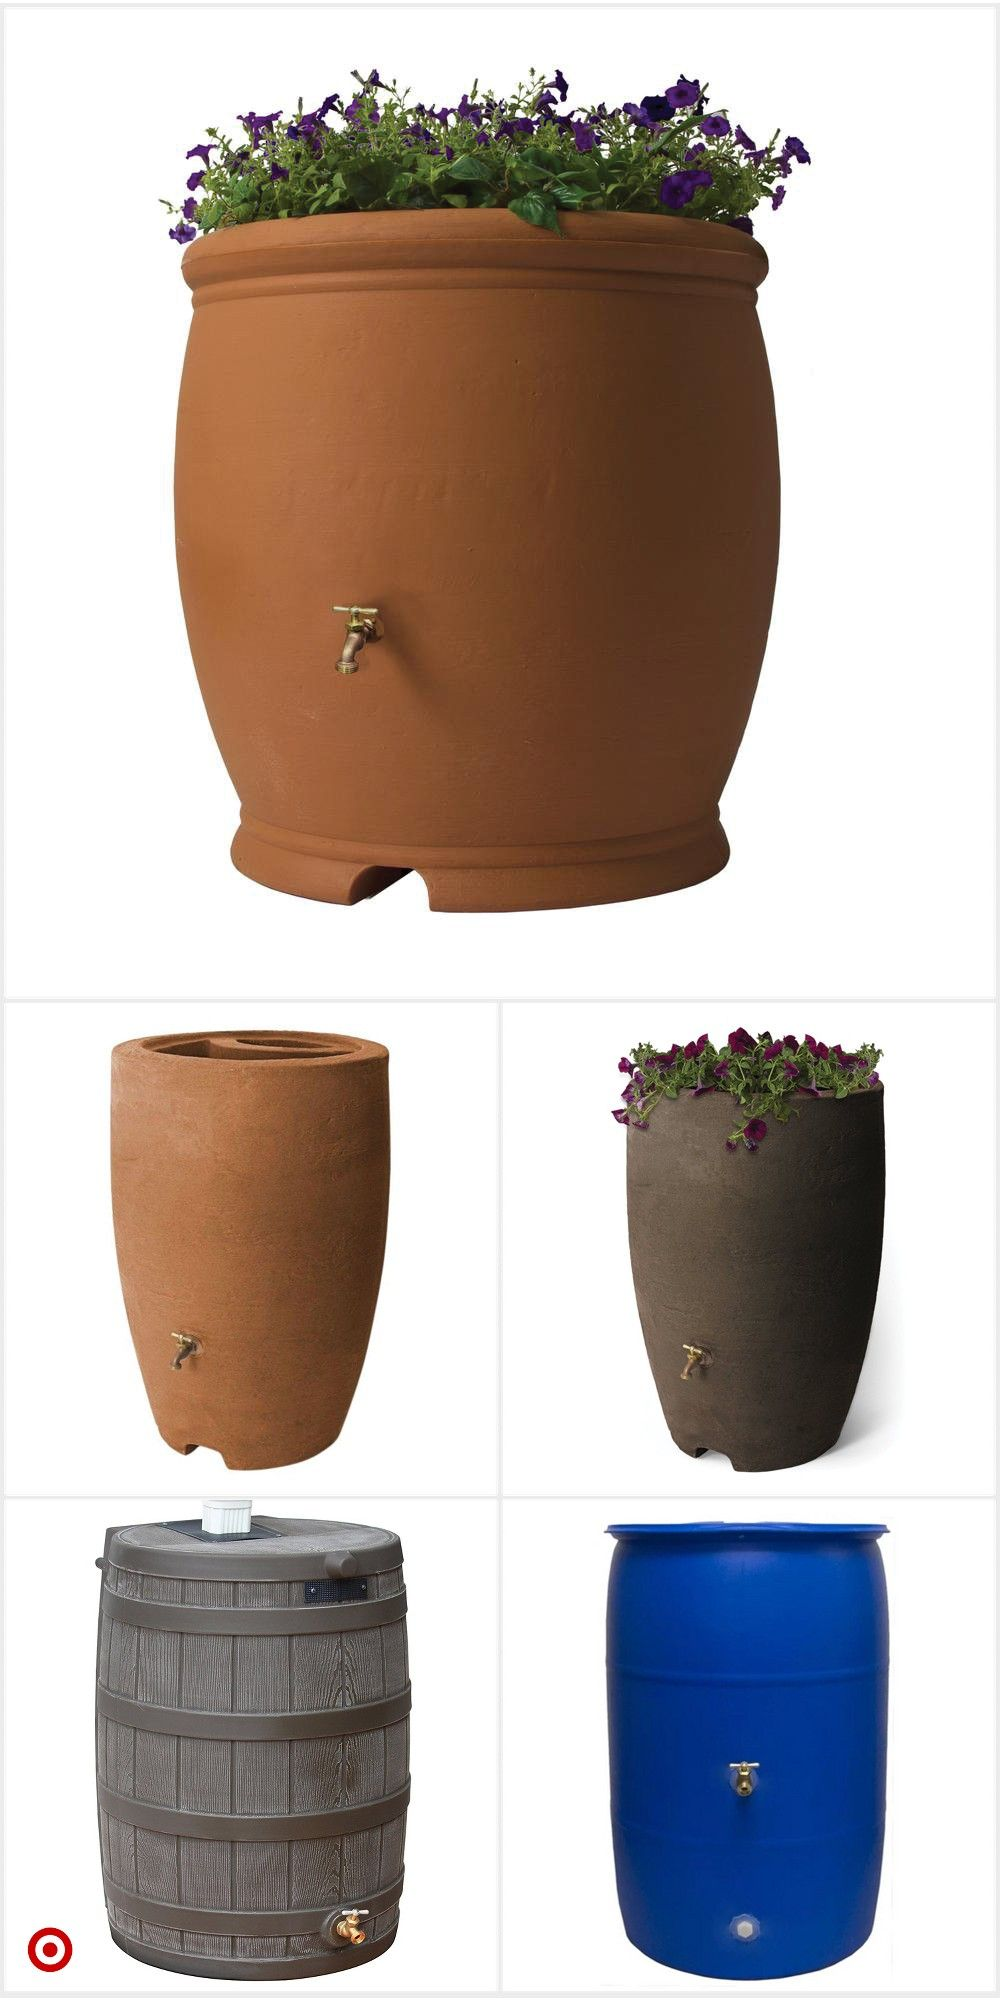 Rain Barrel For Collecting Rain Water And Using It For Watering